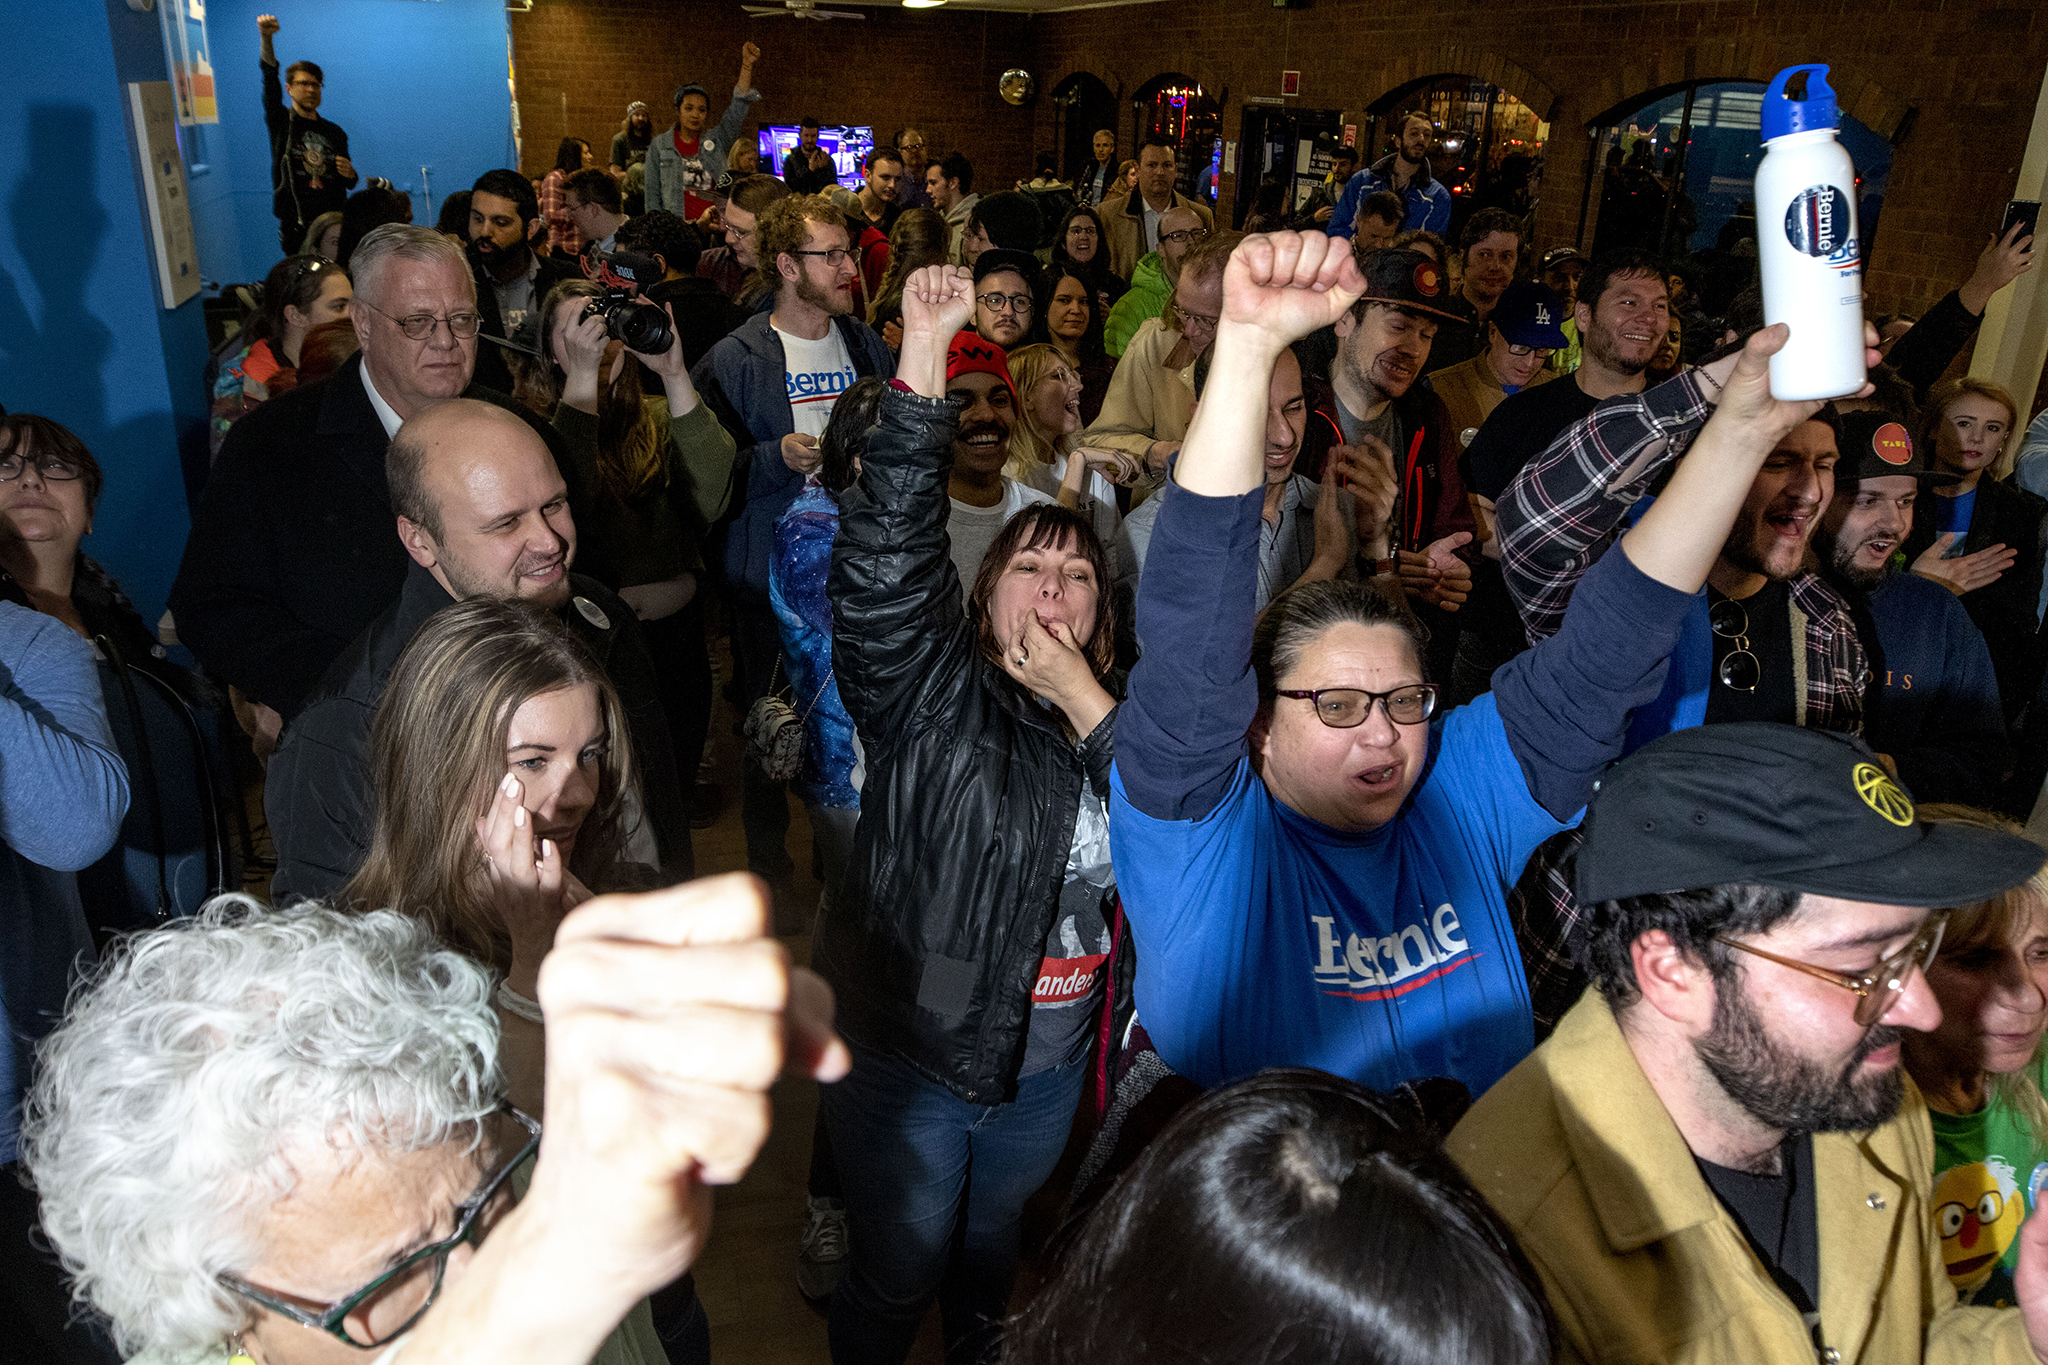 The Bernie Sanders campaign headquarters celebrates as the Vermont Senator is projected to win Colorado.